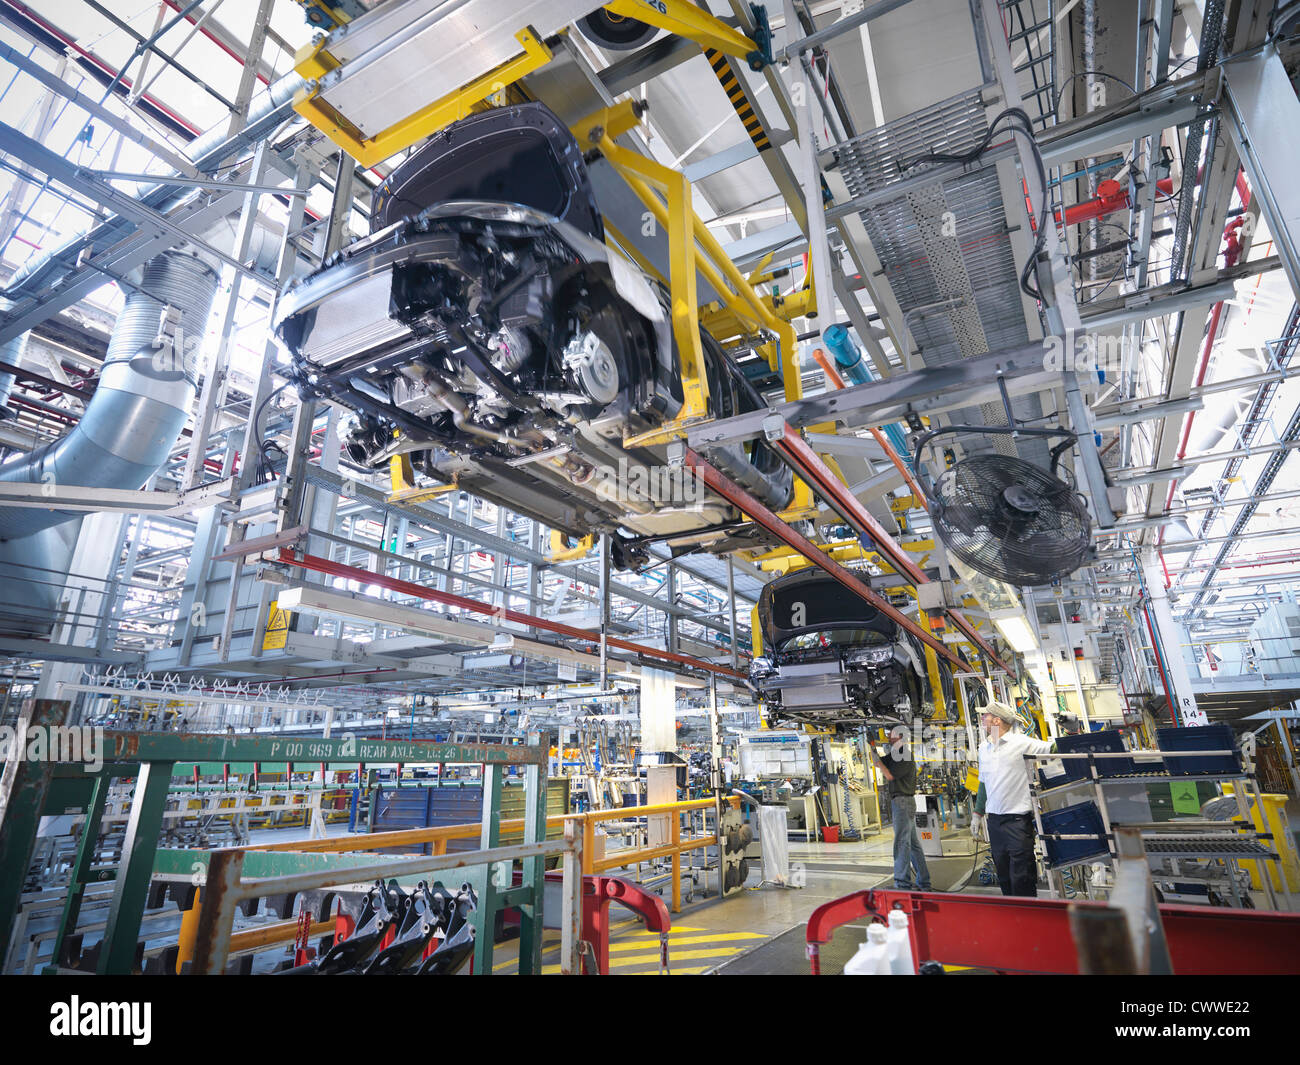 Workers on car production line in car factory - Stock Image